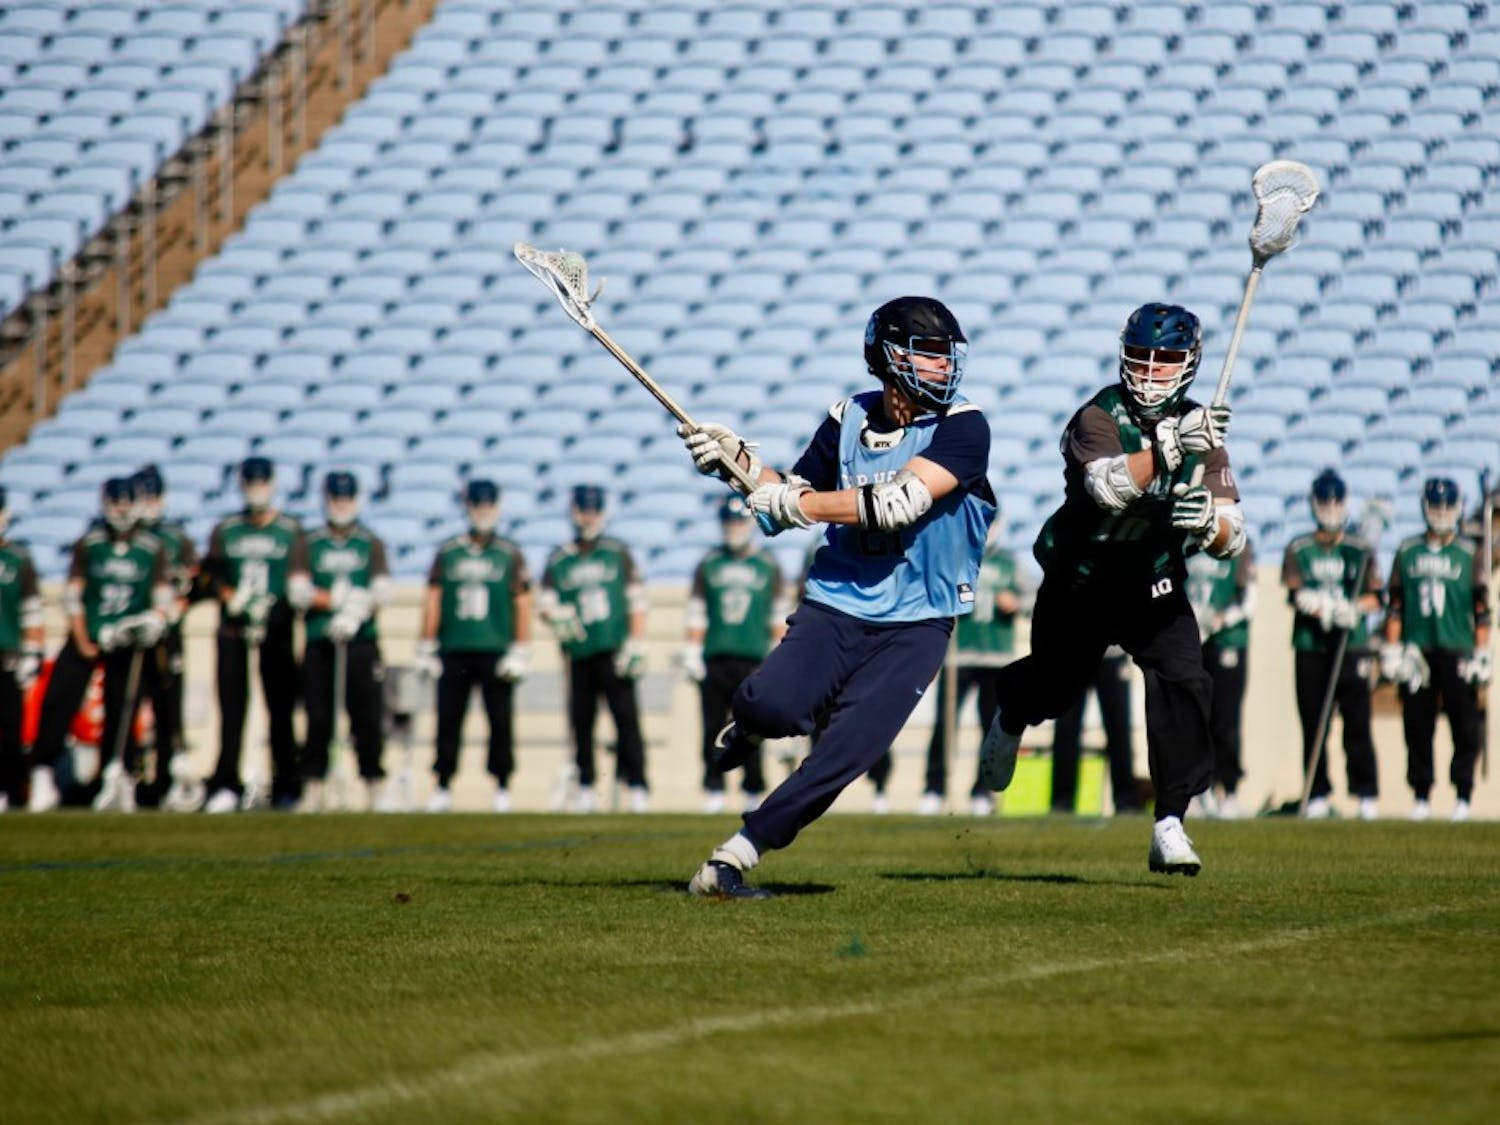 UNC junior midfielder Justin Anderson (21) powers past Loyola midfielder Cole Boland (10) in a scrimmage on Saturday, Jan. 26, 2019 in Kenan Stadium. UNC lost to Loyola with a score of 10-15.